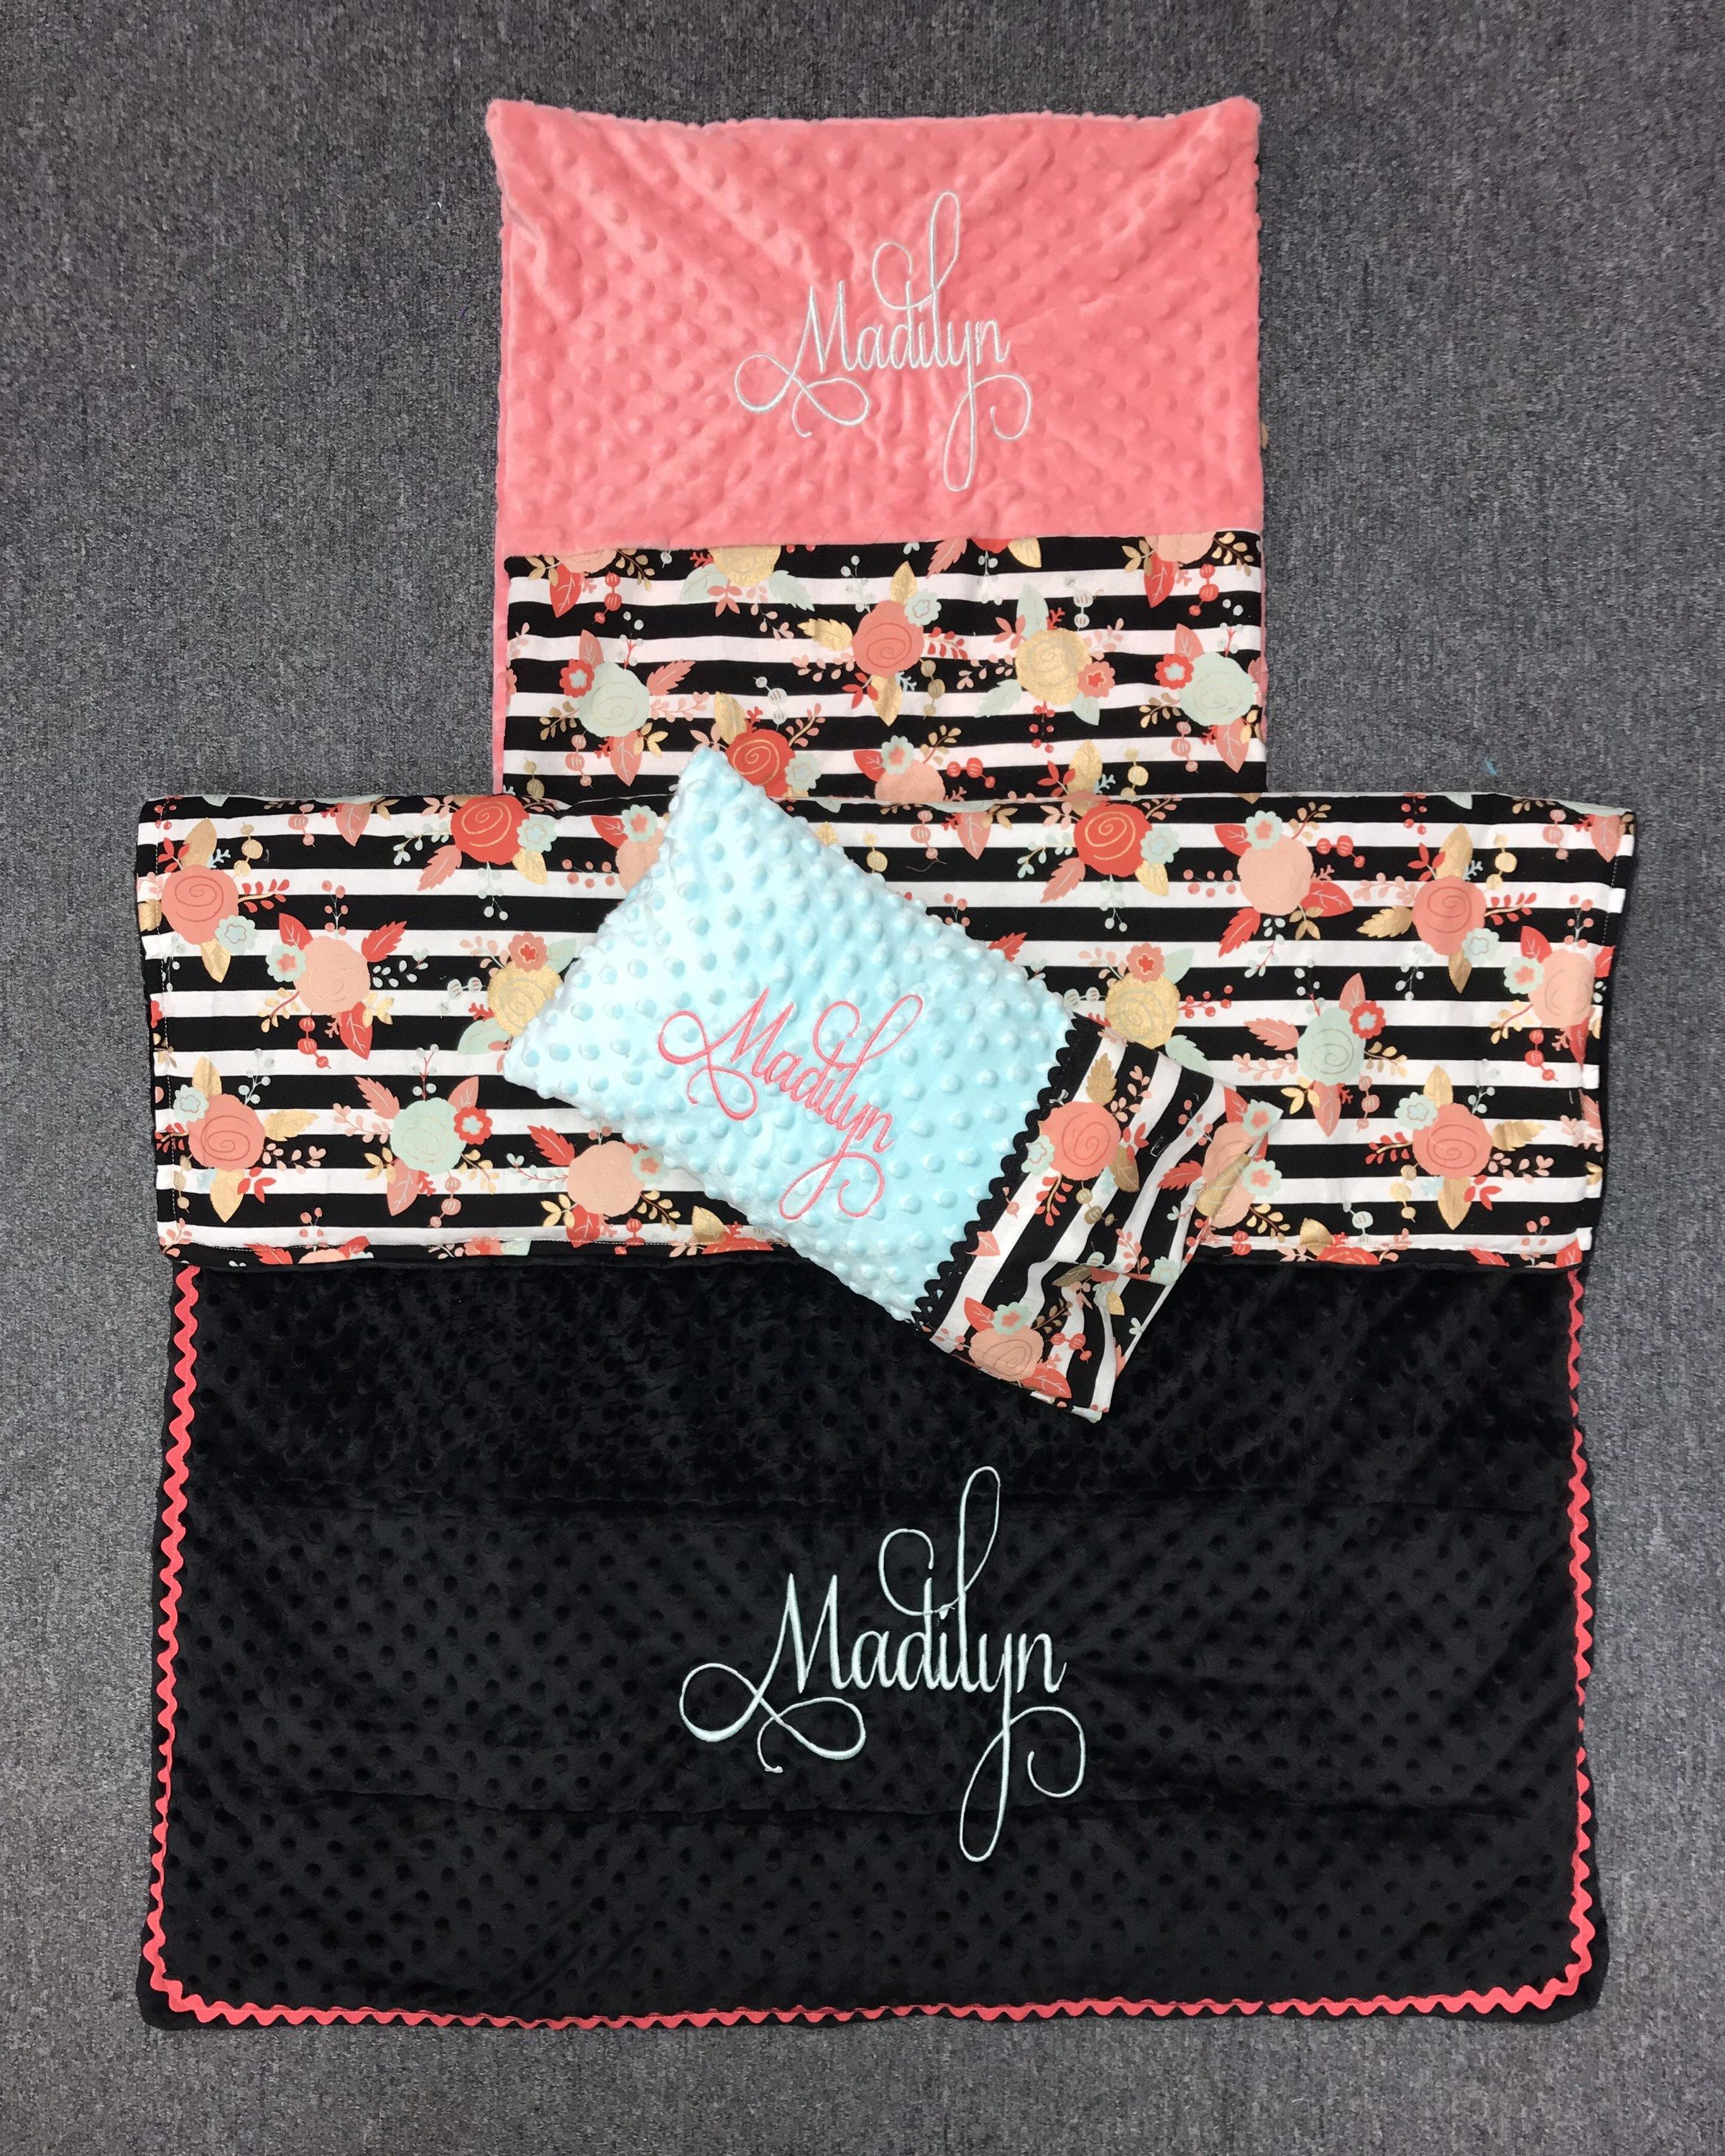 Custom embroidered floral nap mat cover and blanket